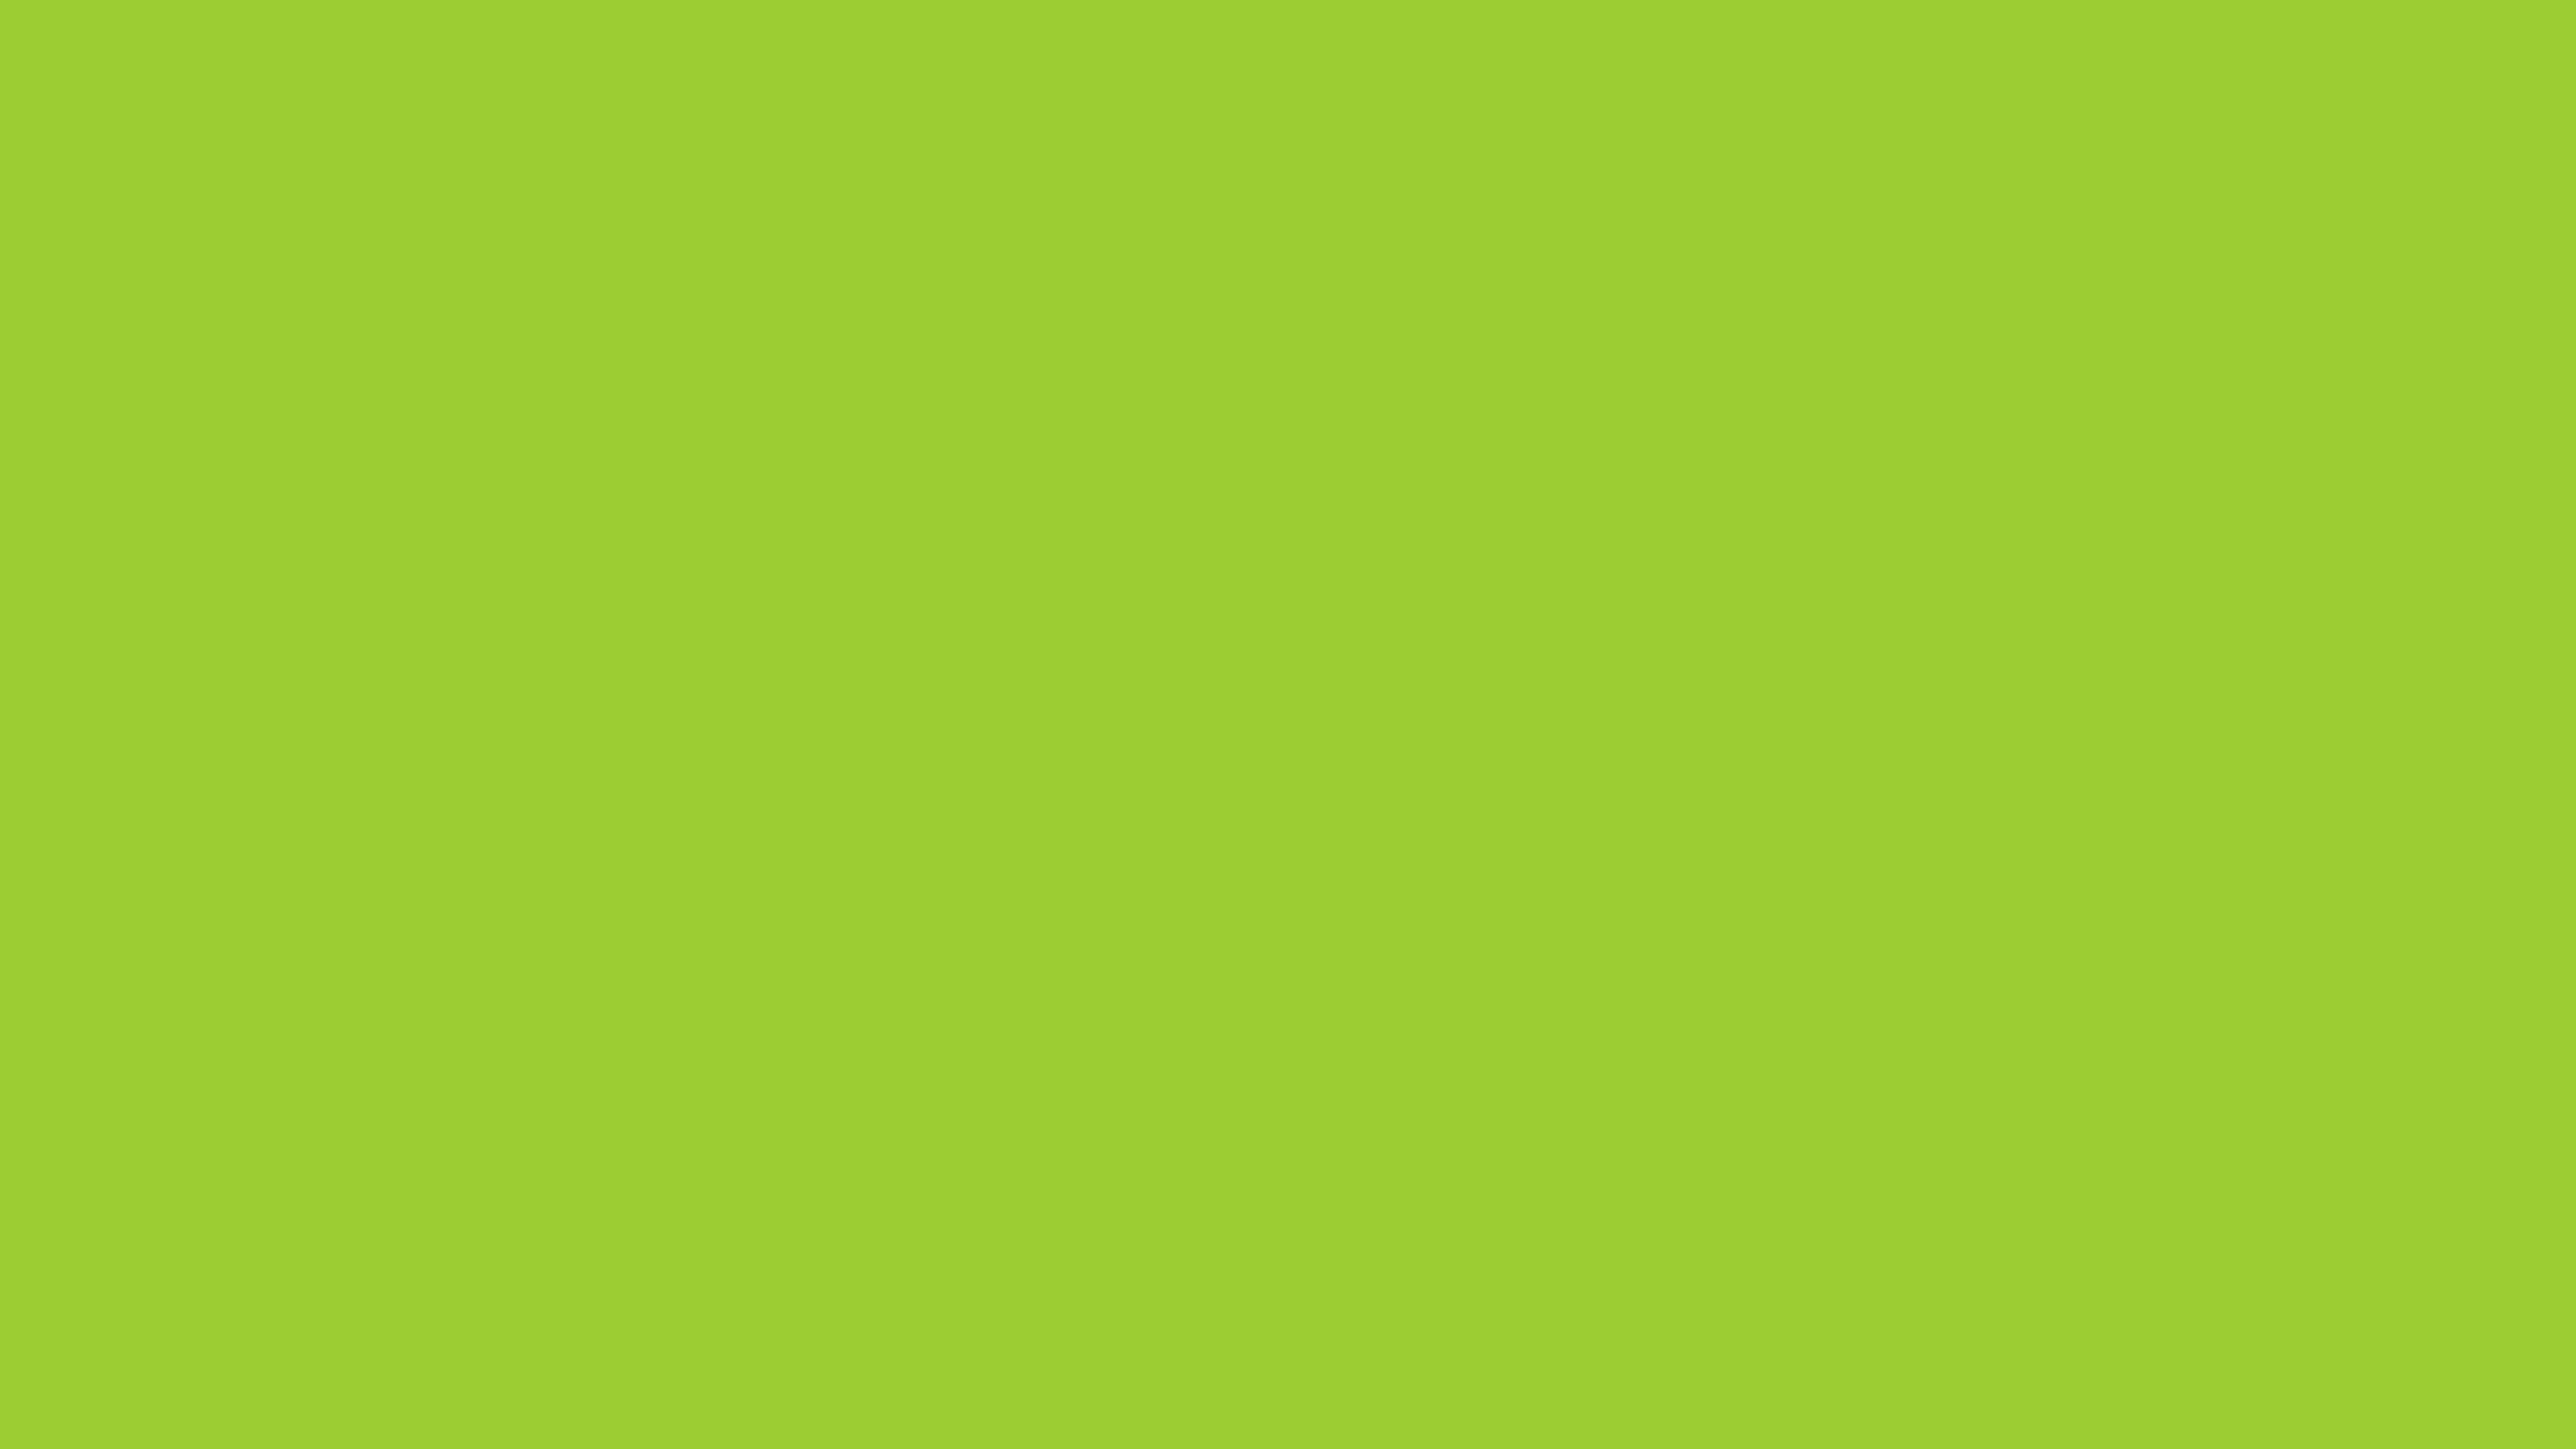 5120x2880 Yellow-green Solid Color Background